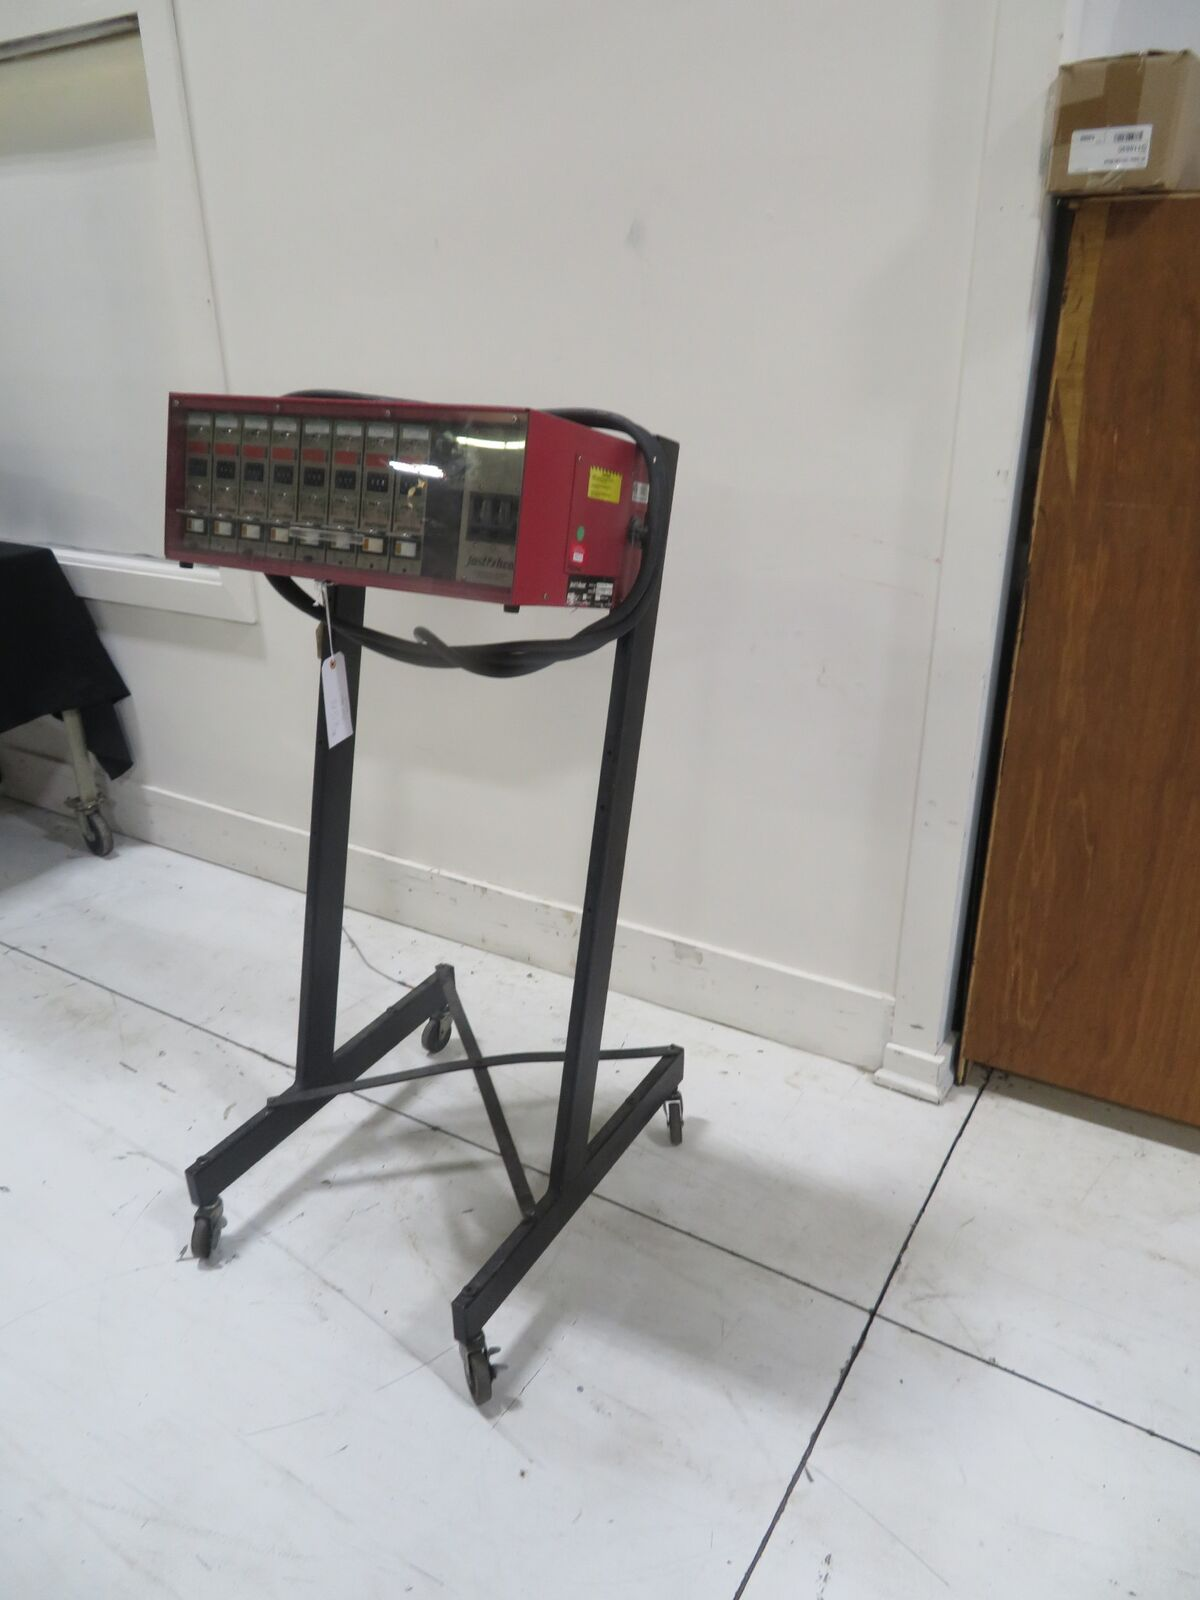 Fast Heat Used KS35087 Hot Runner Controller, Yr. 2001, 8 zone, 240V